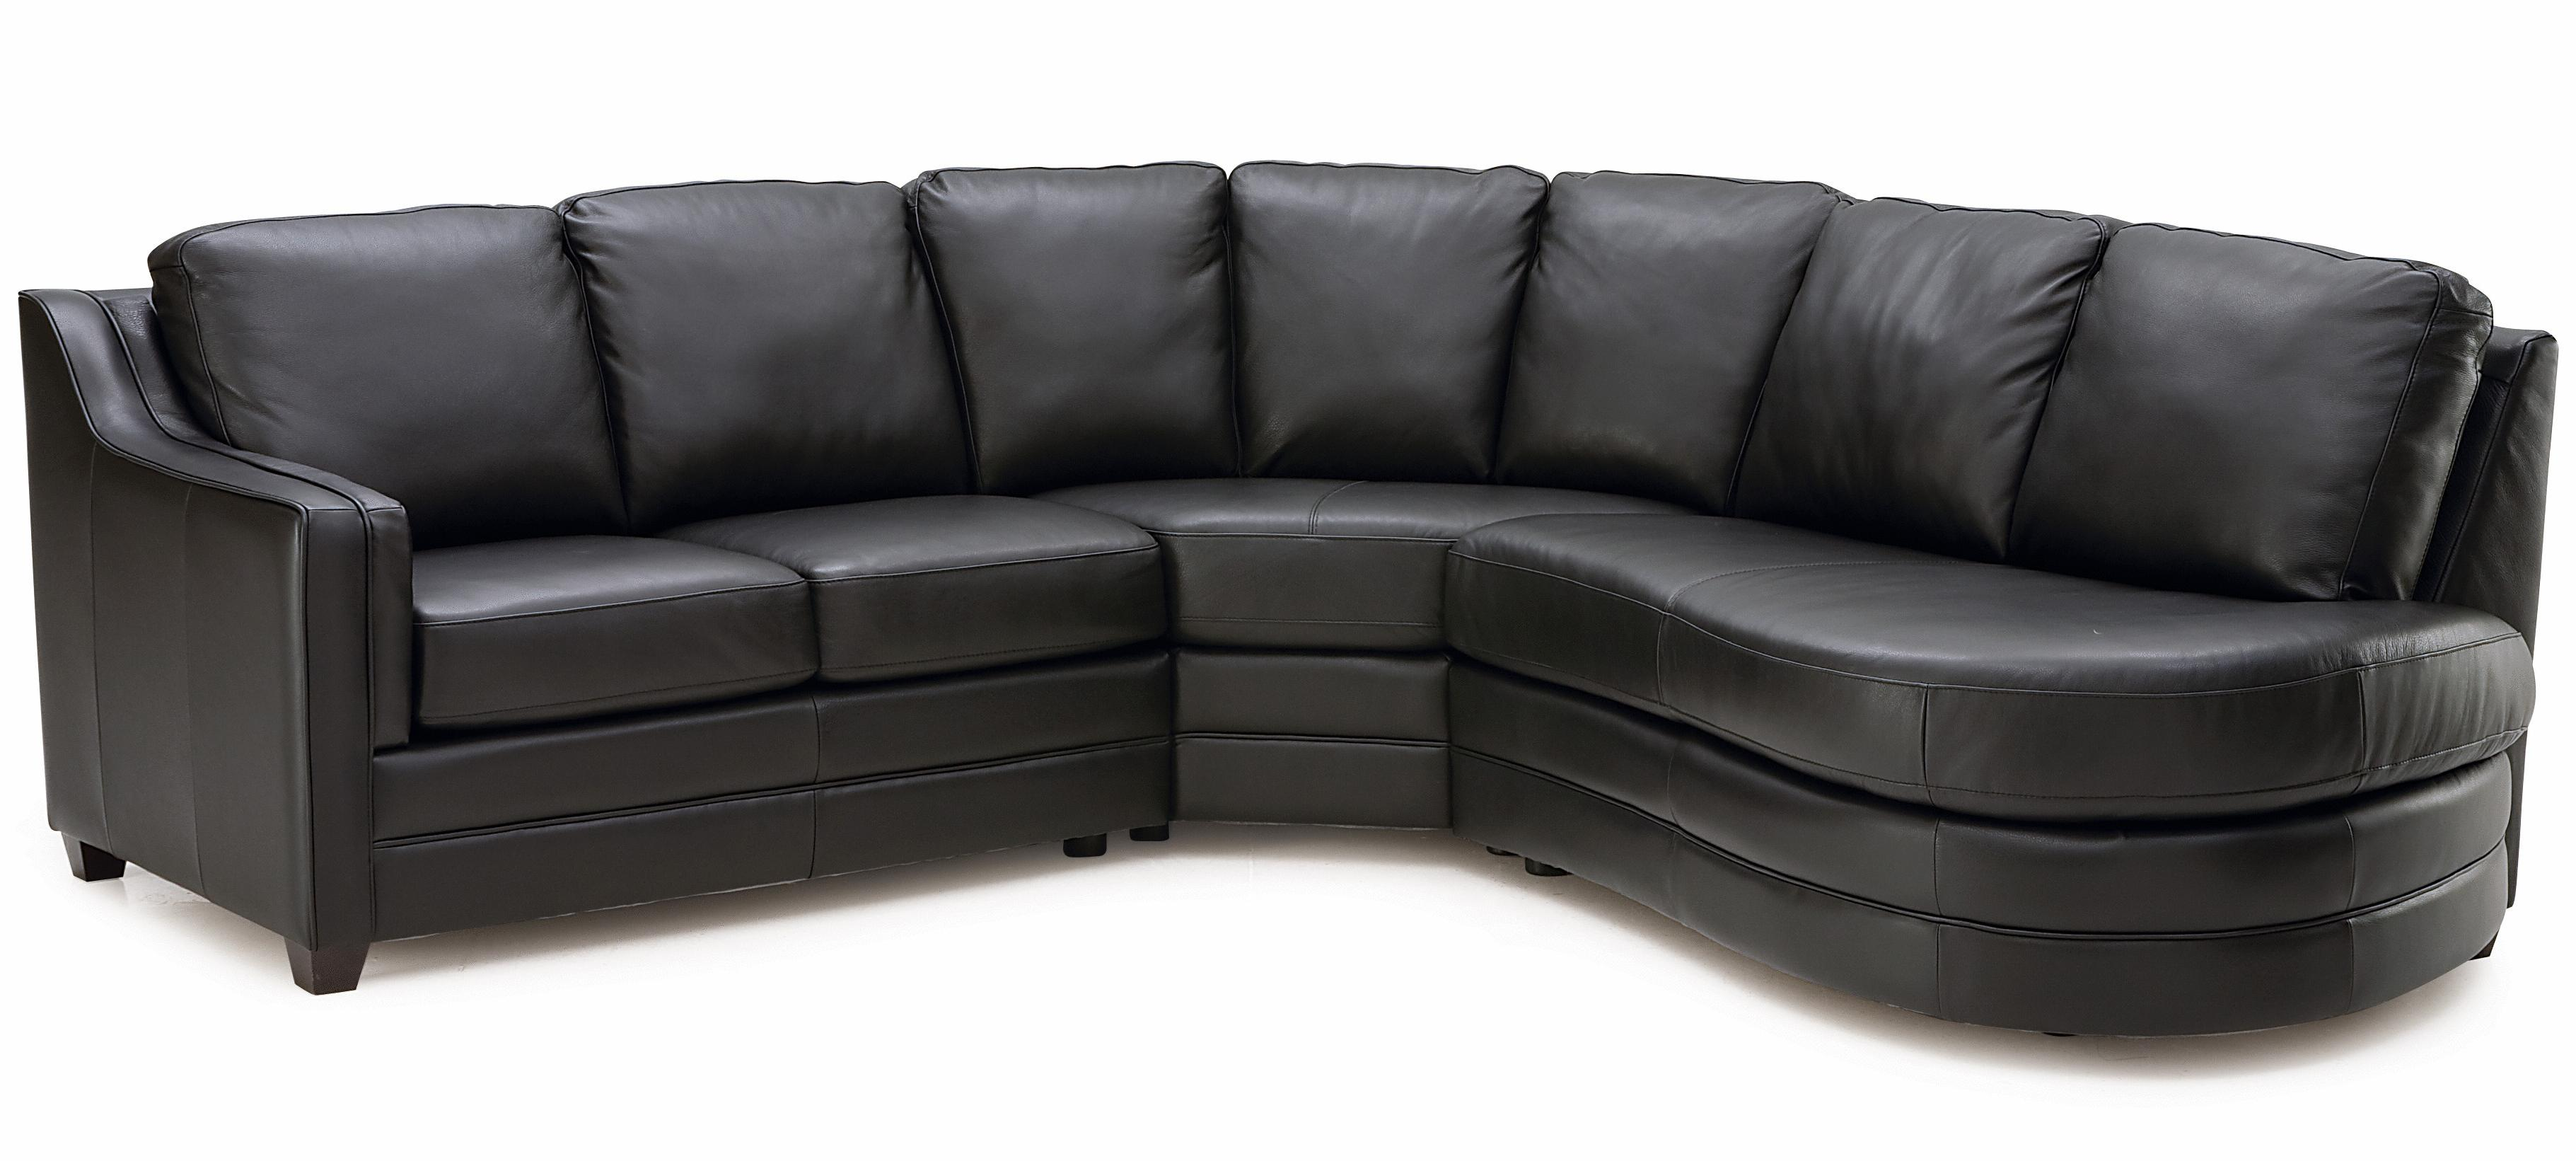 Corissa Contemporary Sectional Sofa By Palliser